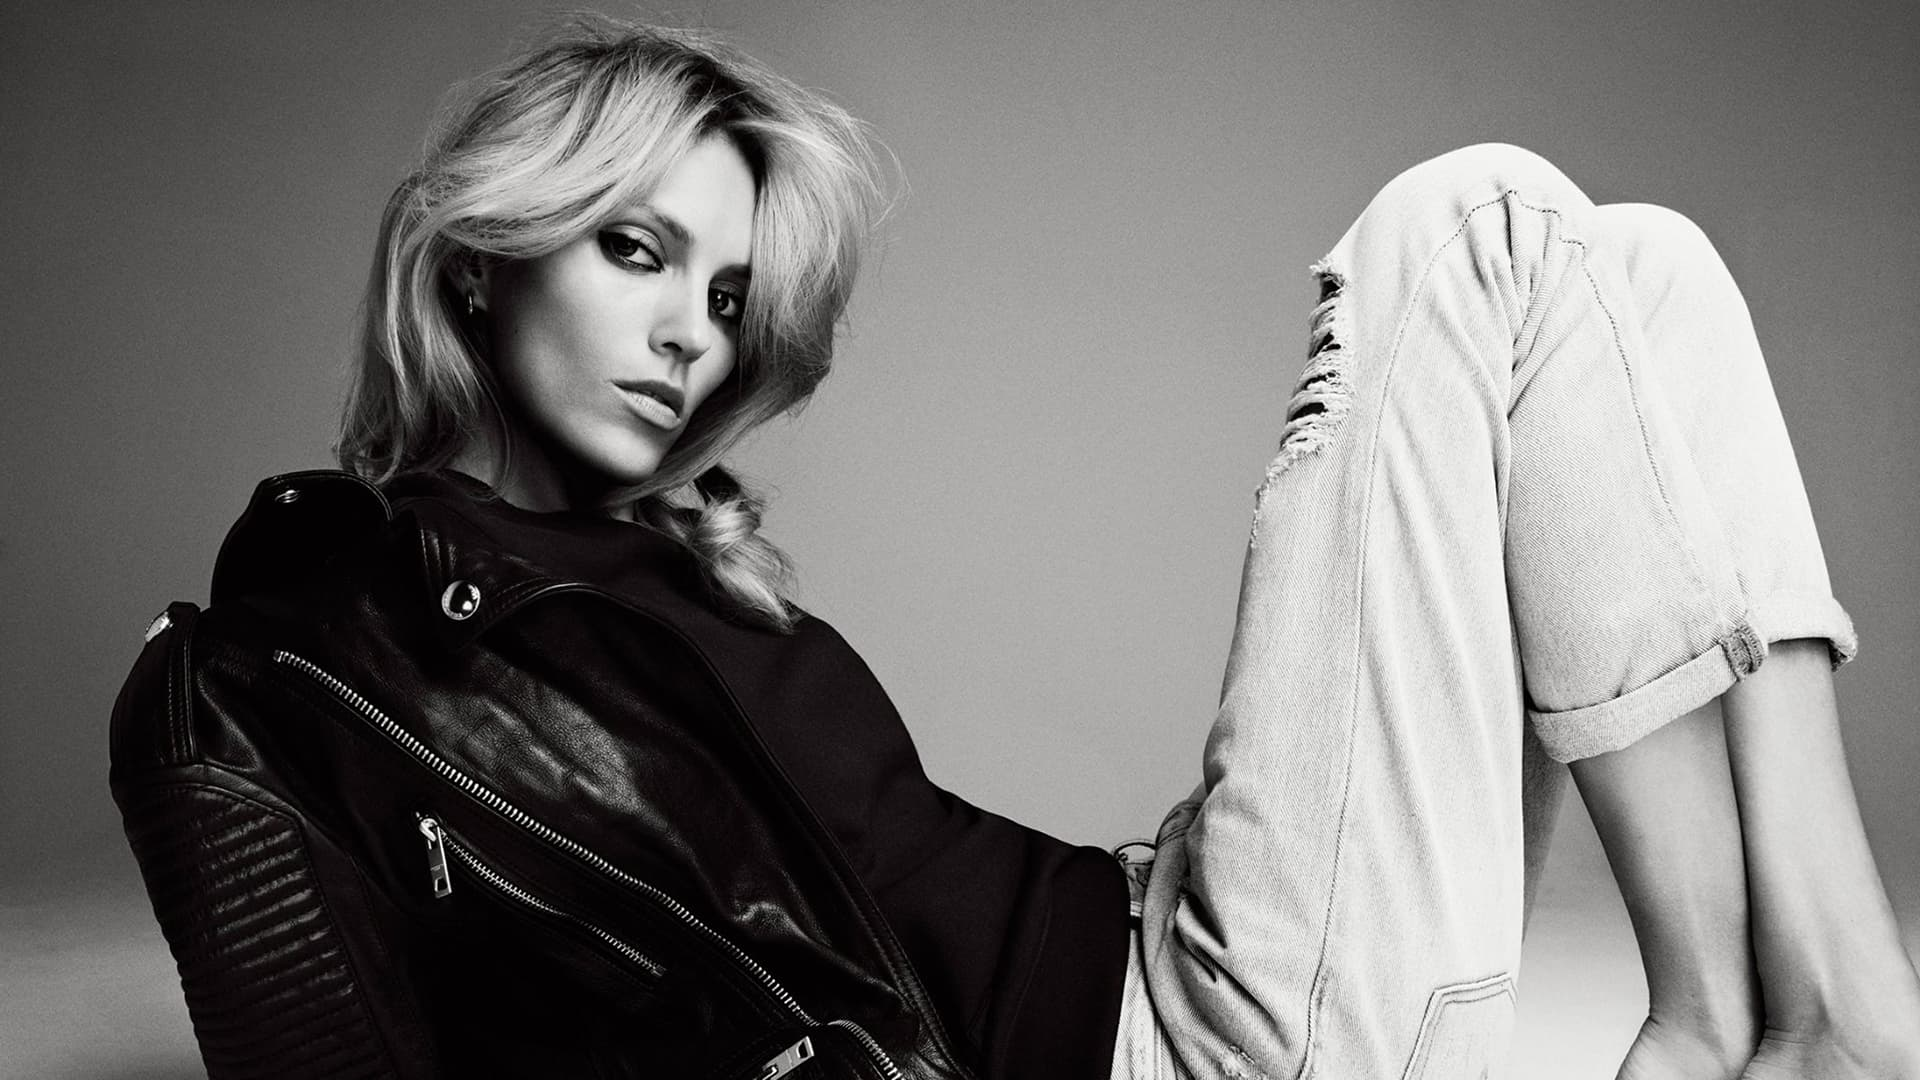 Anja Rubik Wallpapers Hd High Quality Resolution Download